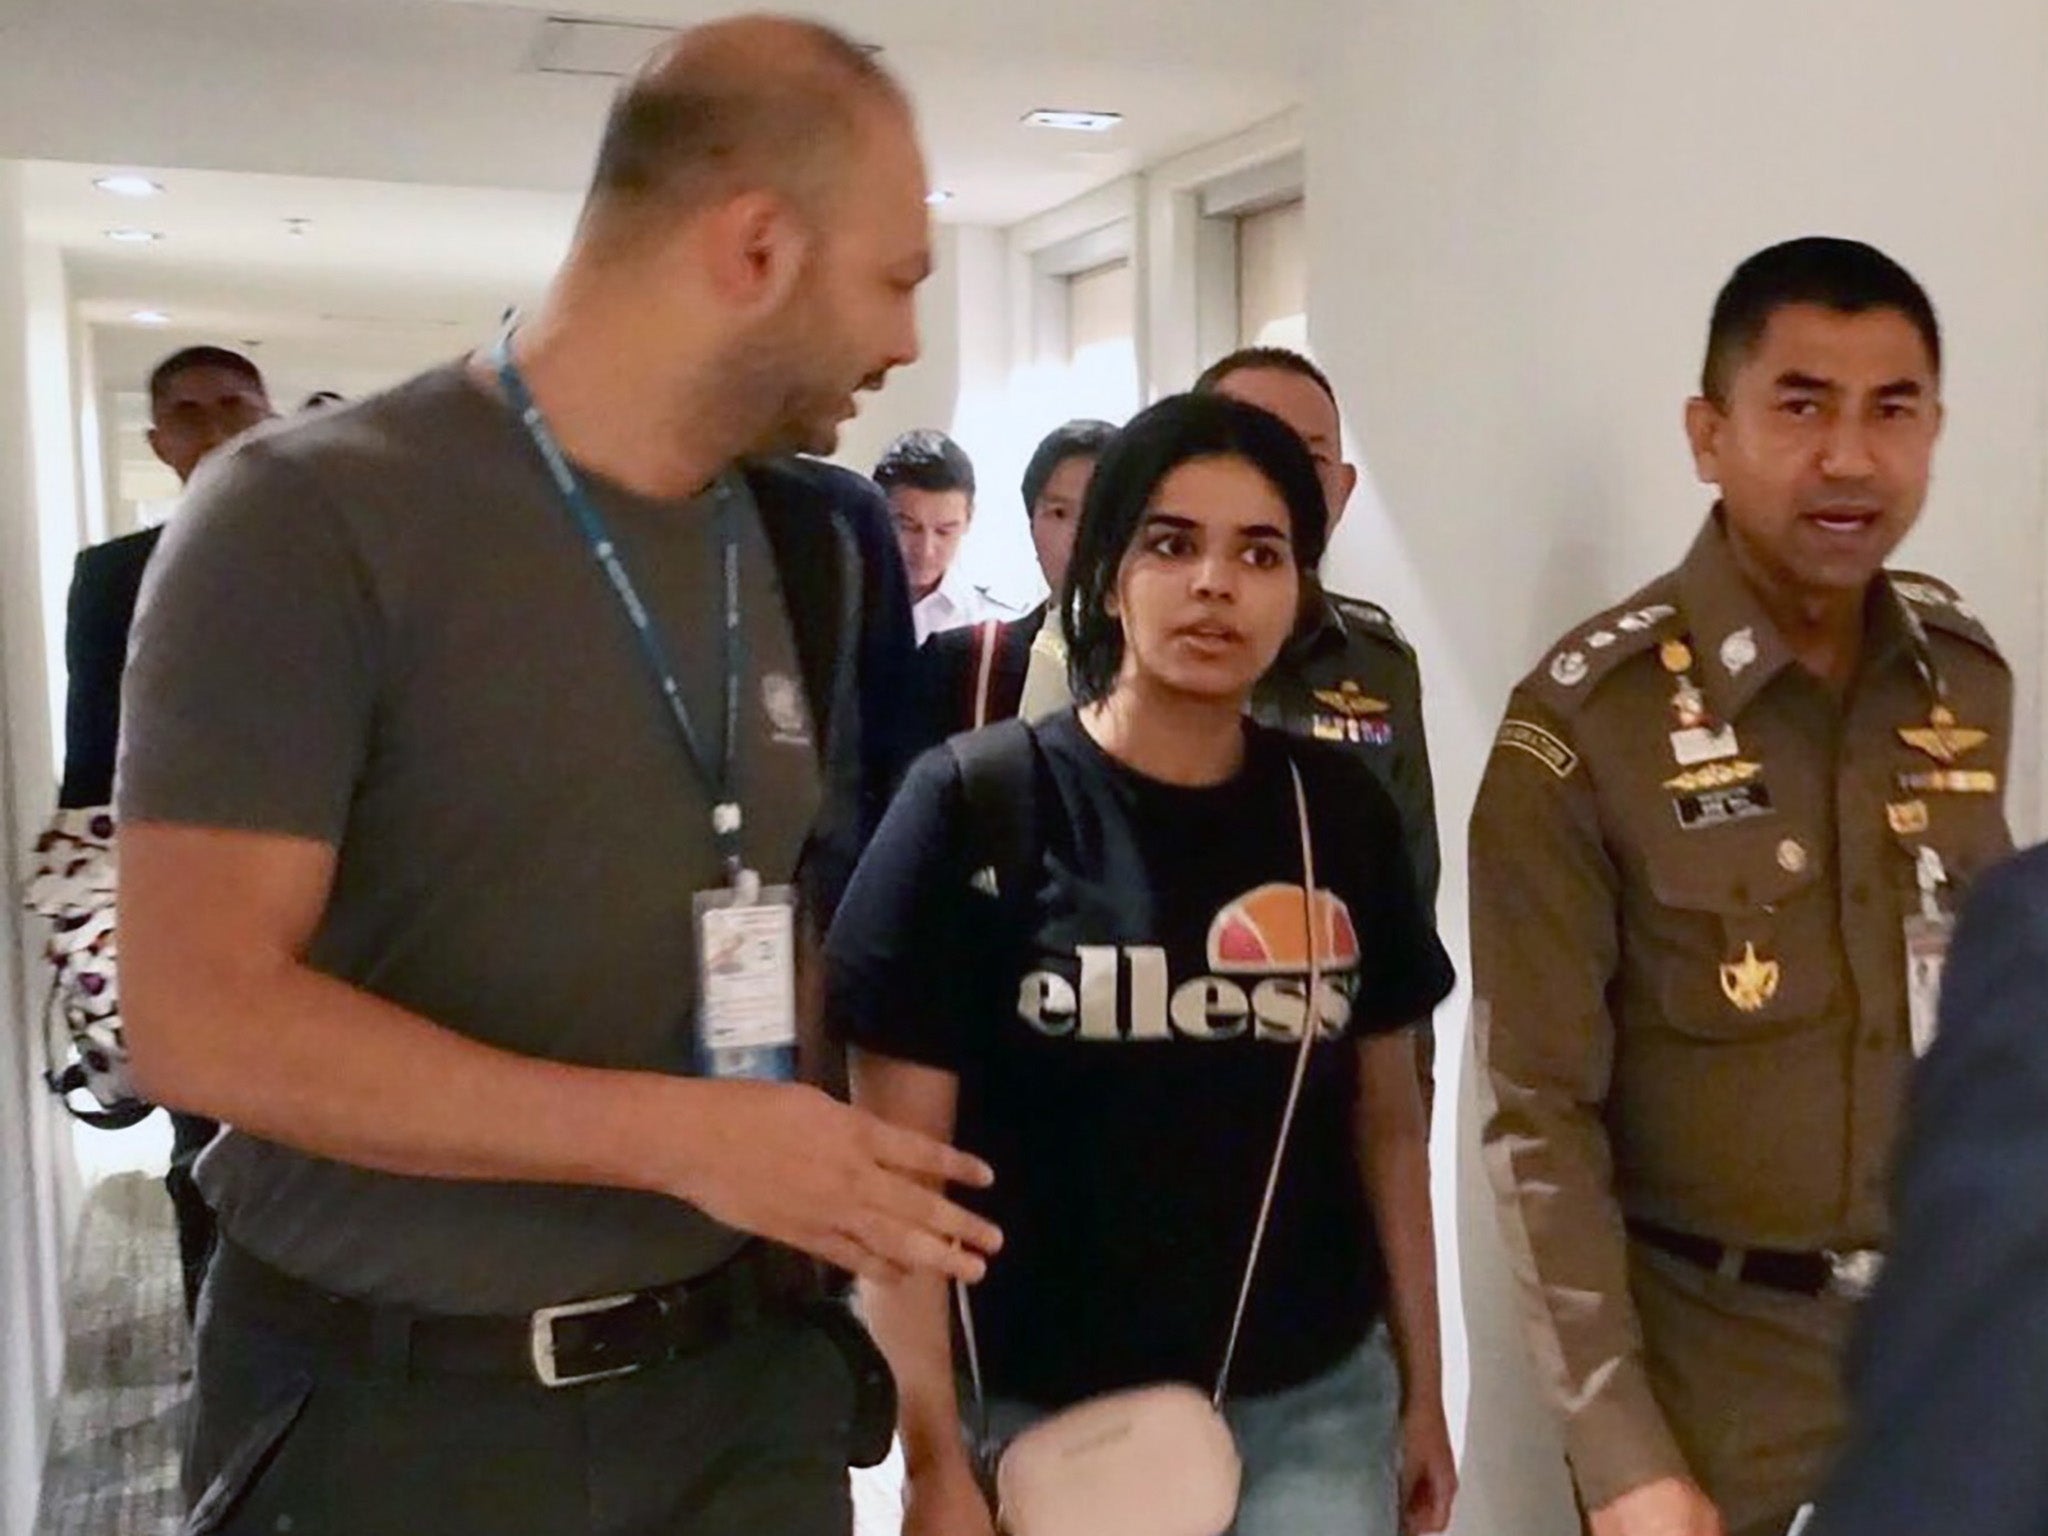 https://www.independent.co.uk/news/world/middle-east/rahaf-al-qunun-petition-asylum-uk-saudi-arabia-family-un-bangkok-australia-latest-a8717156.html